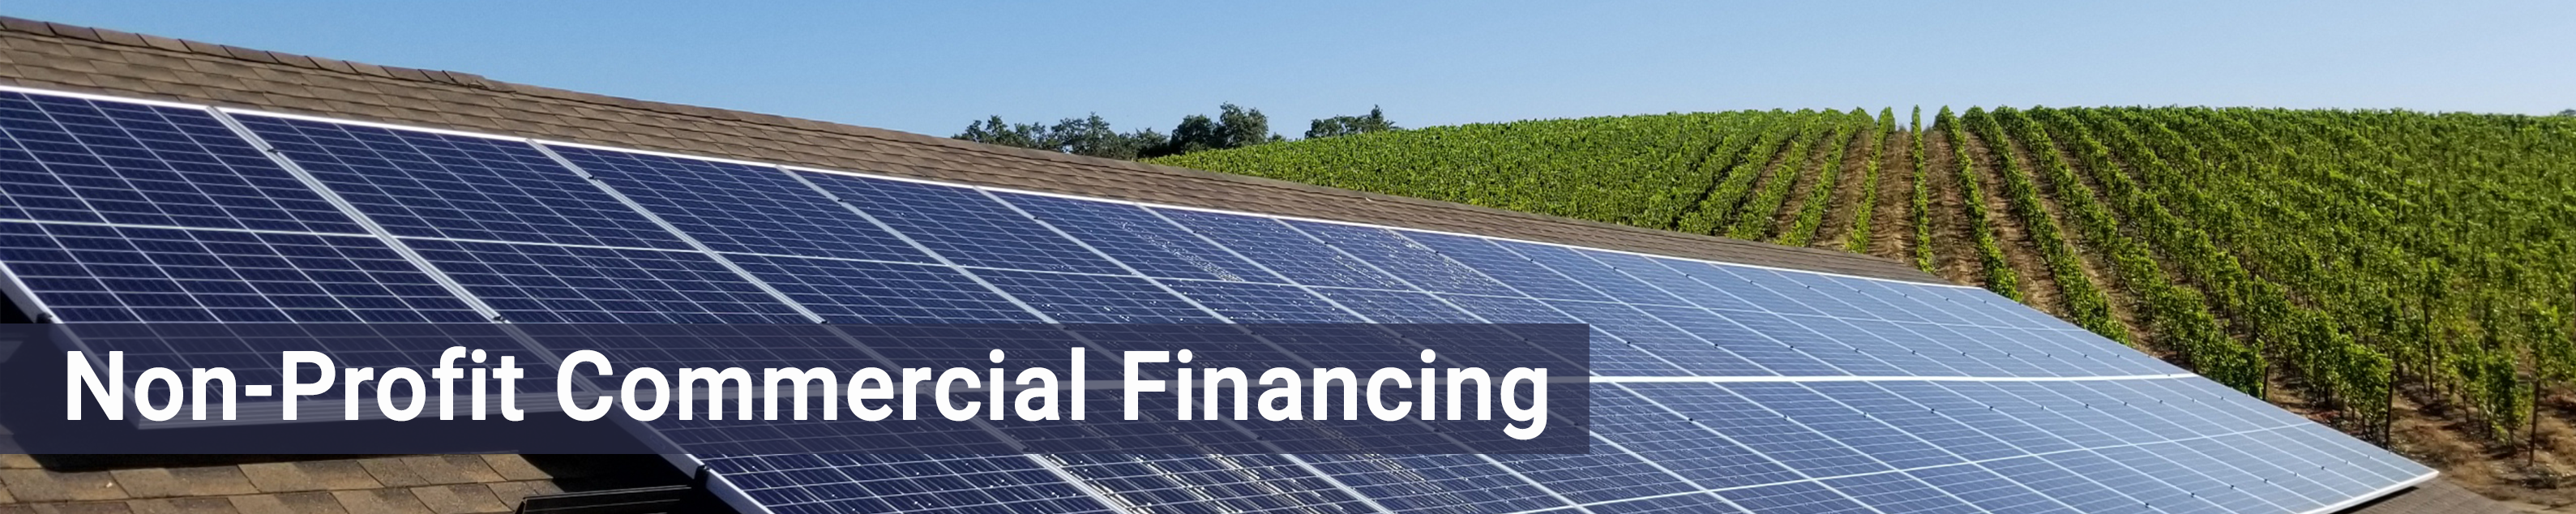 Cornerstone's Commercial Solar Financing For Non-Profits